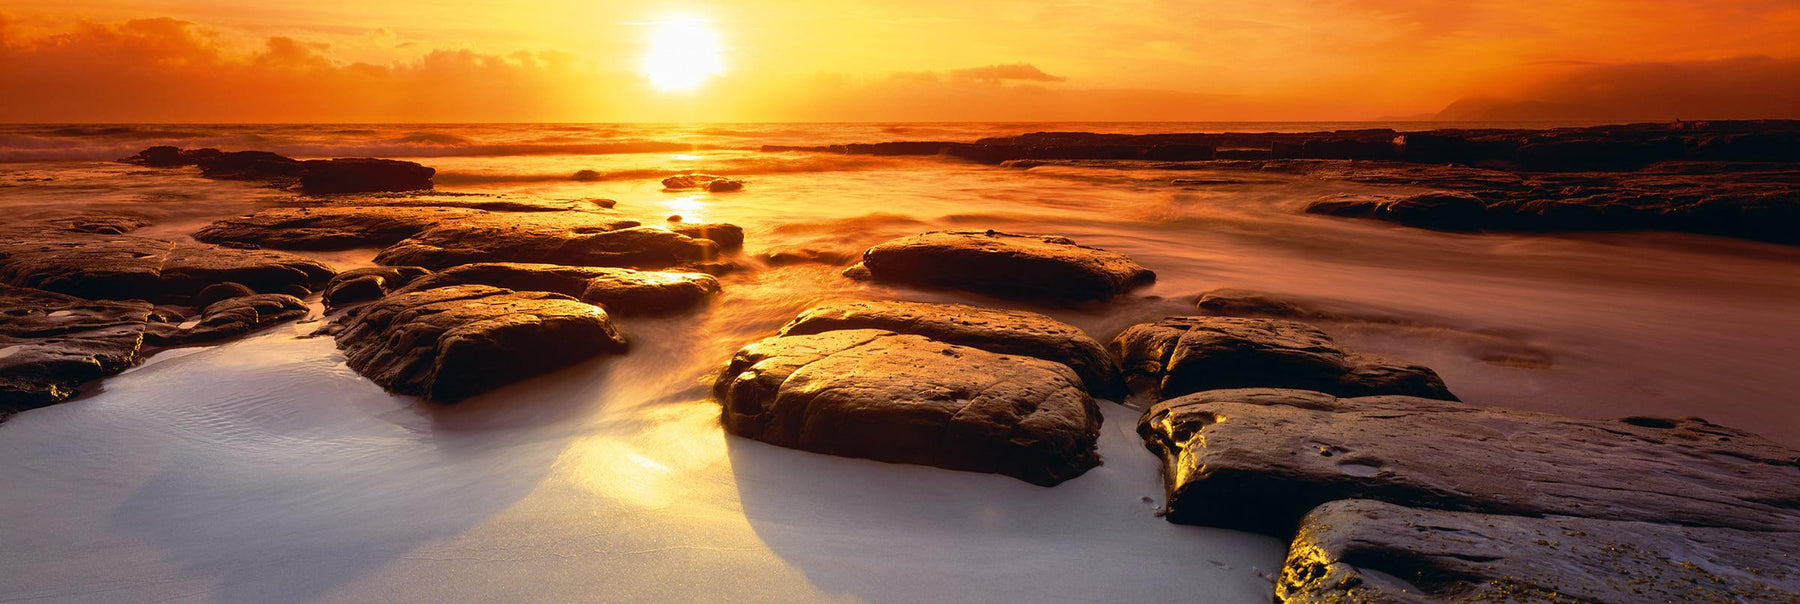 Rocks on a sandy beach during low tide at Wineglass Bay Australia with the sun rising in background